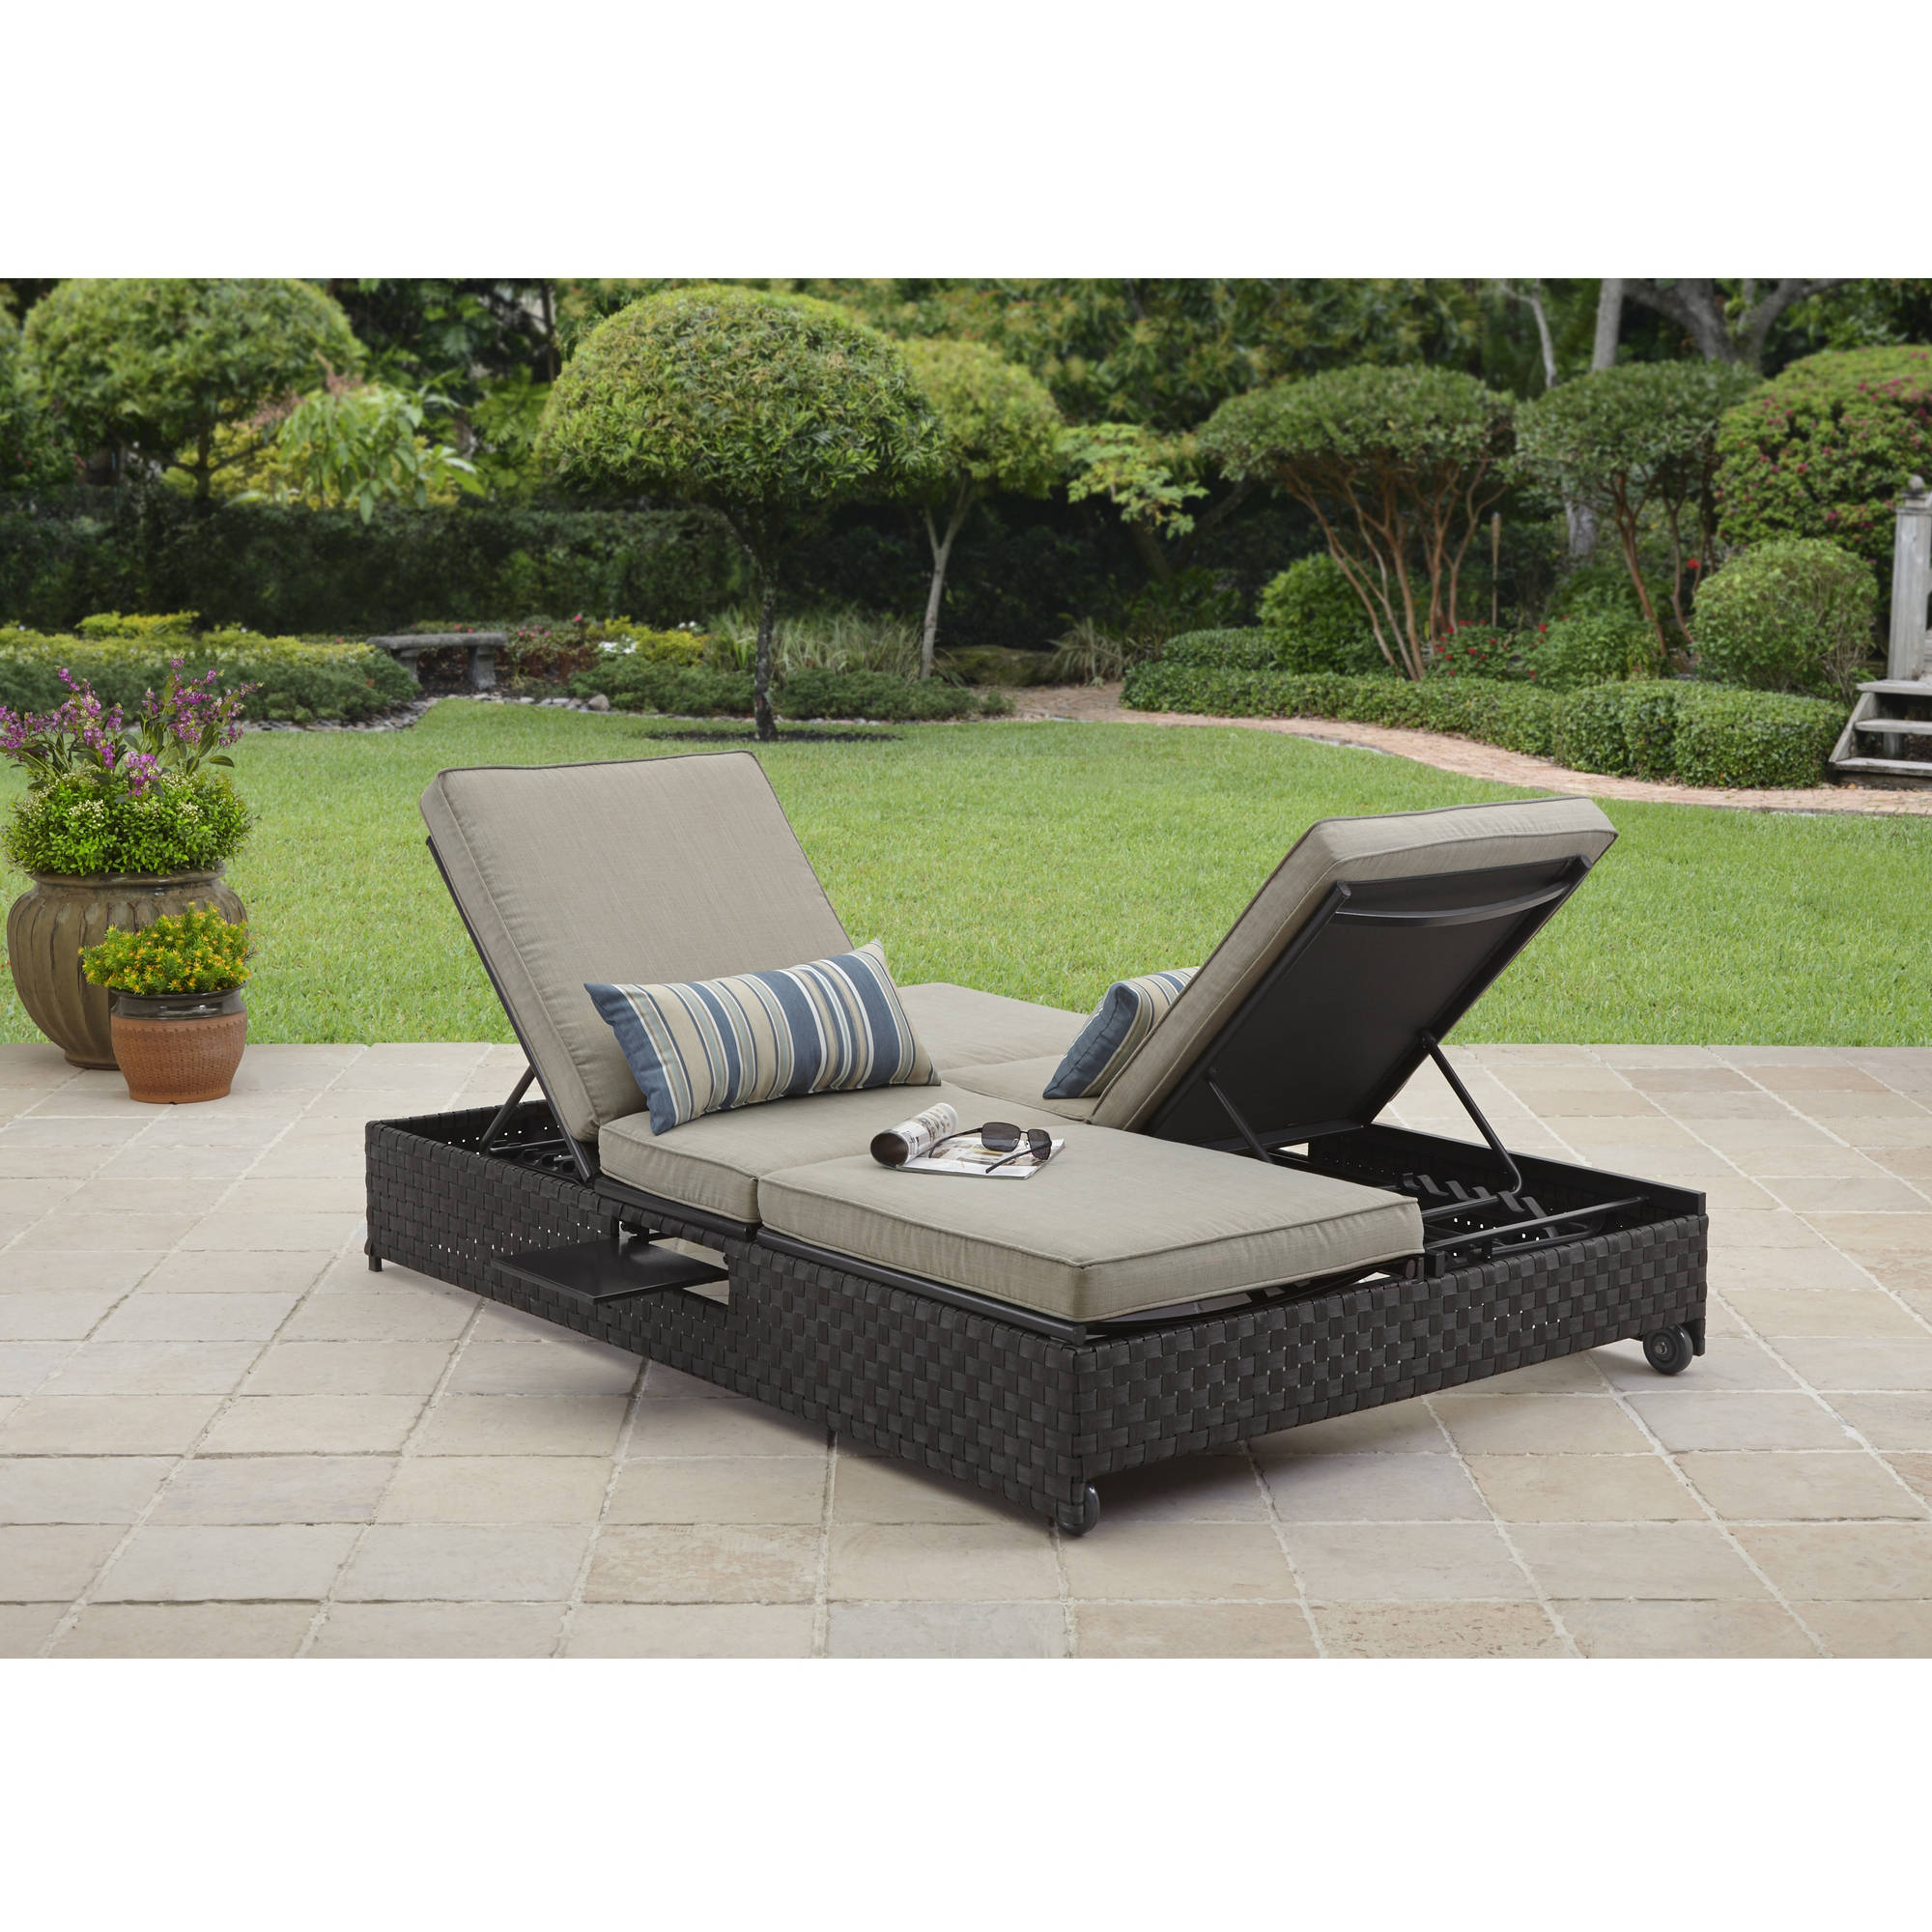 Better Homes and Gardens Avila Beach Double Lounger/Sofa